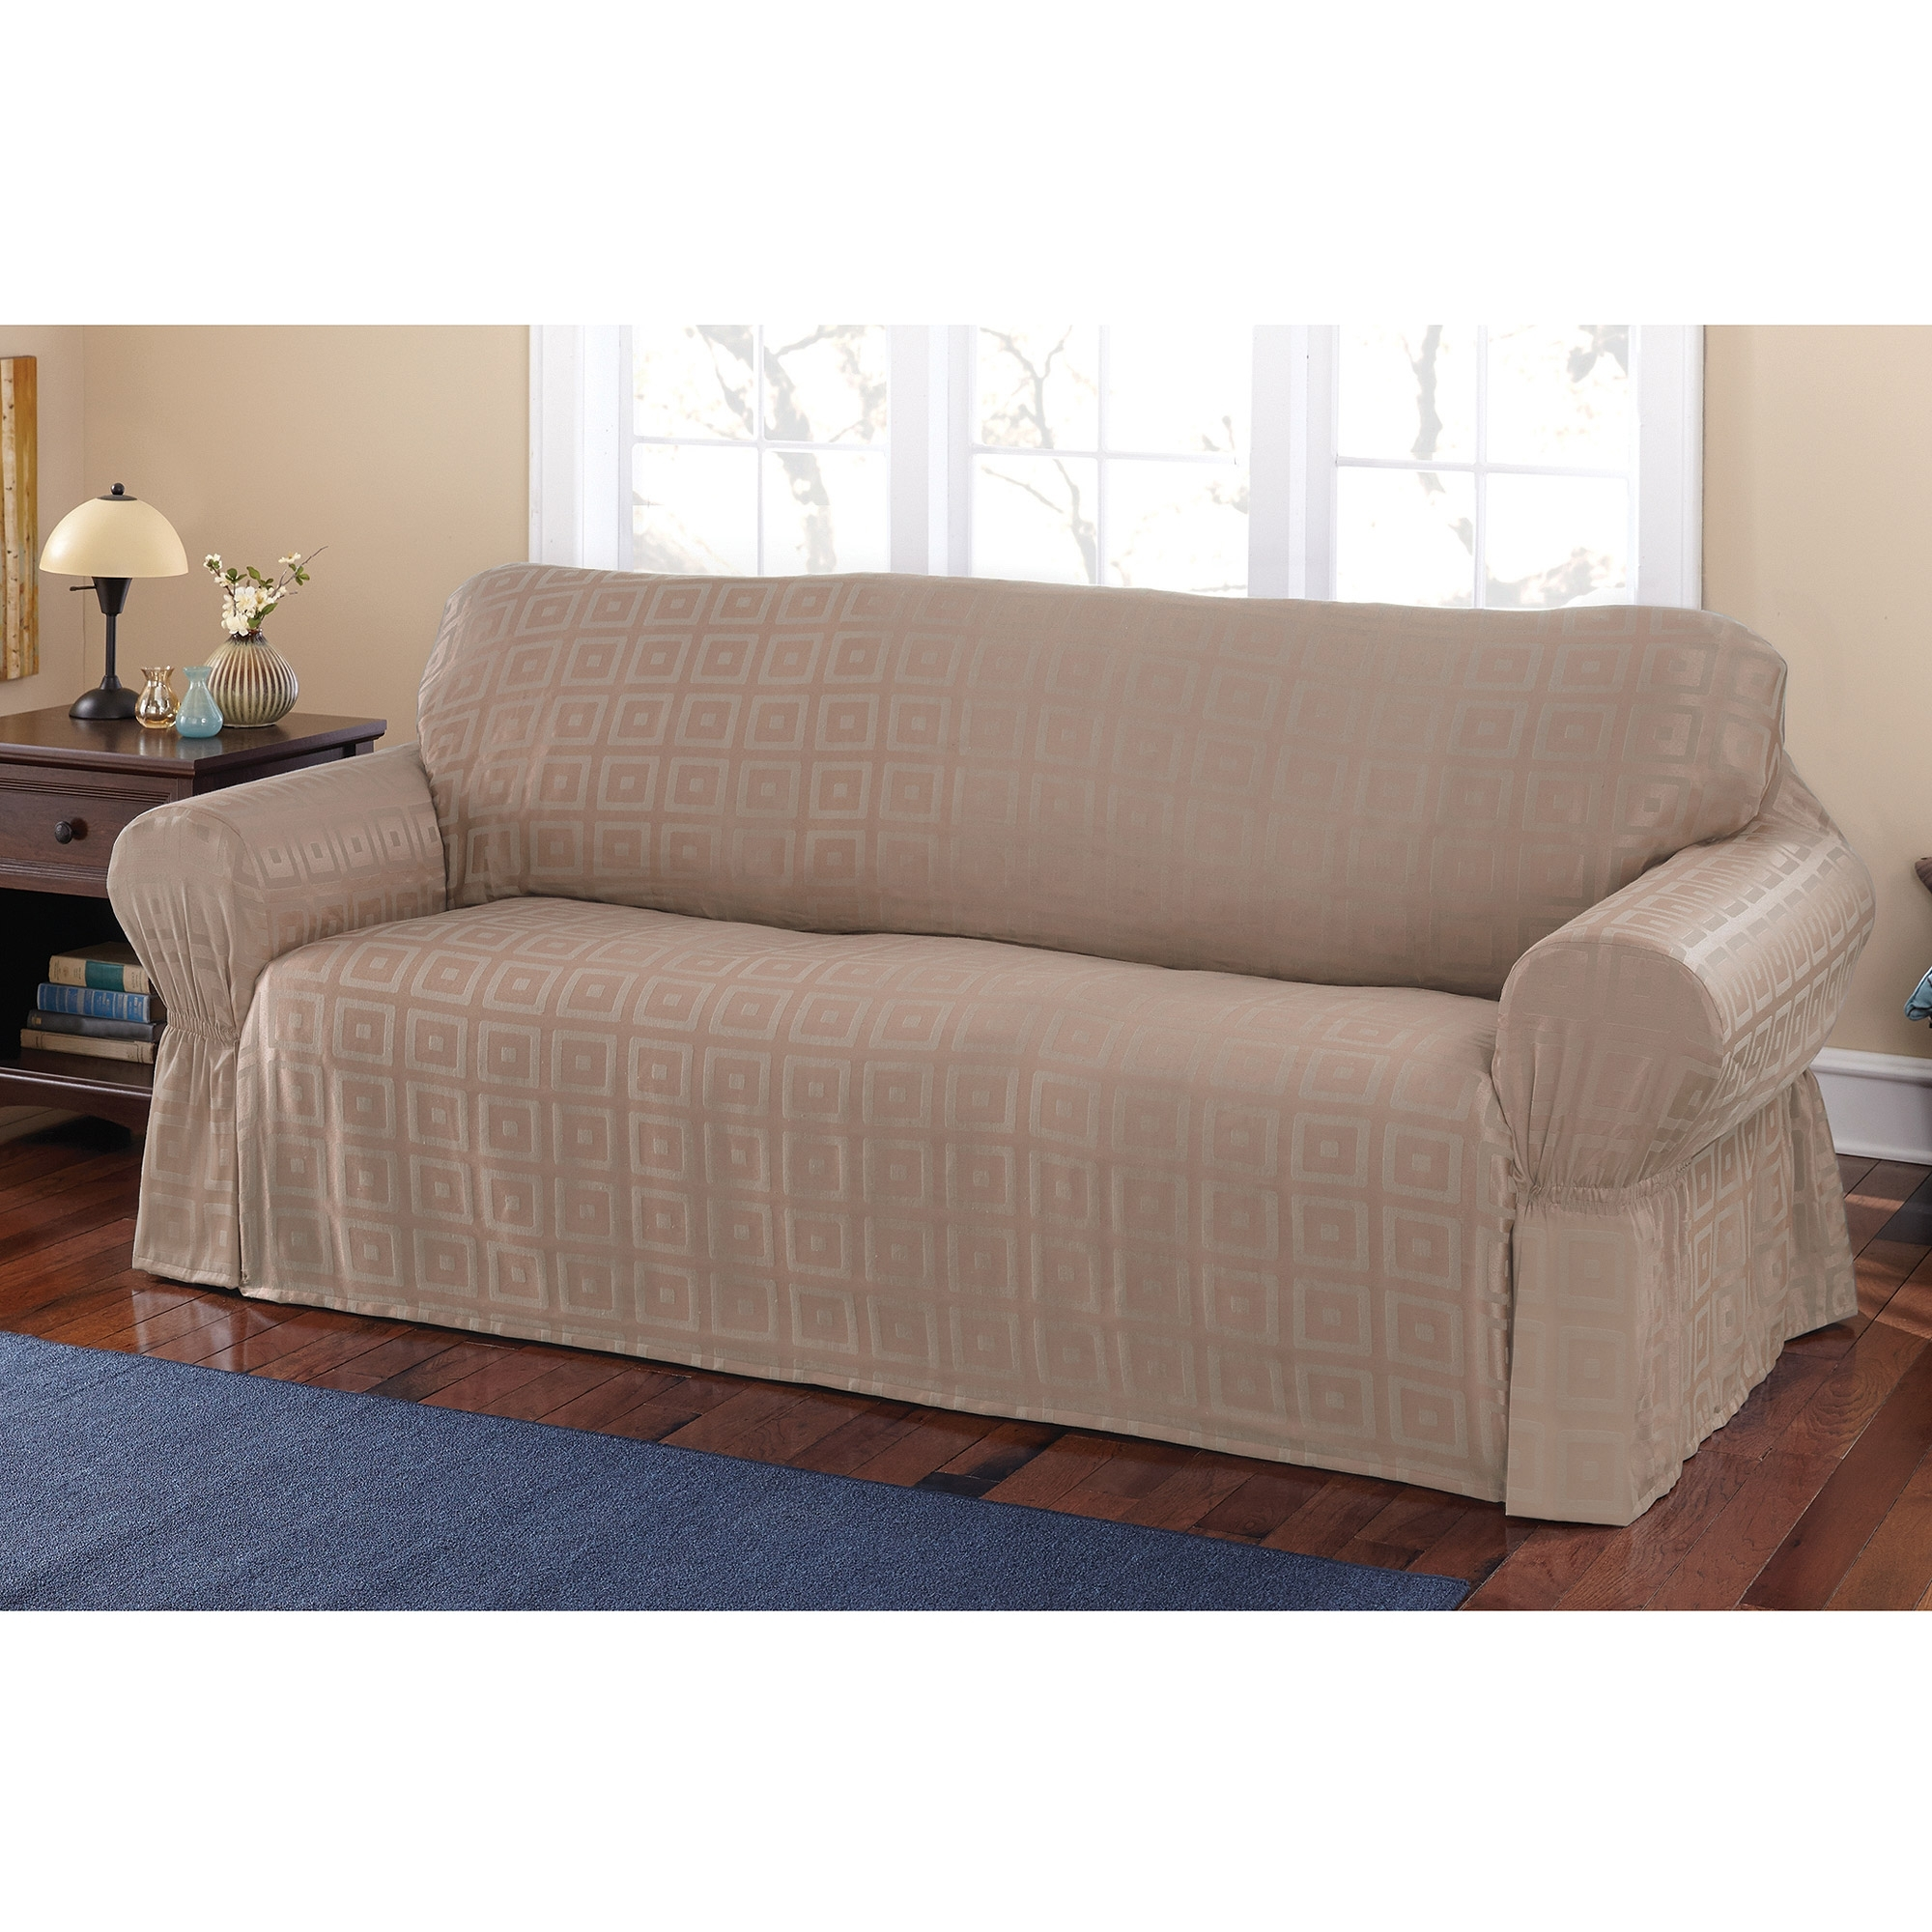 Mainstays Sherwood Slipcover Sofa – Walmart For Most Recent Sectional Sofas At Walmart (View 5 of 20)